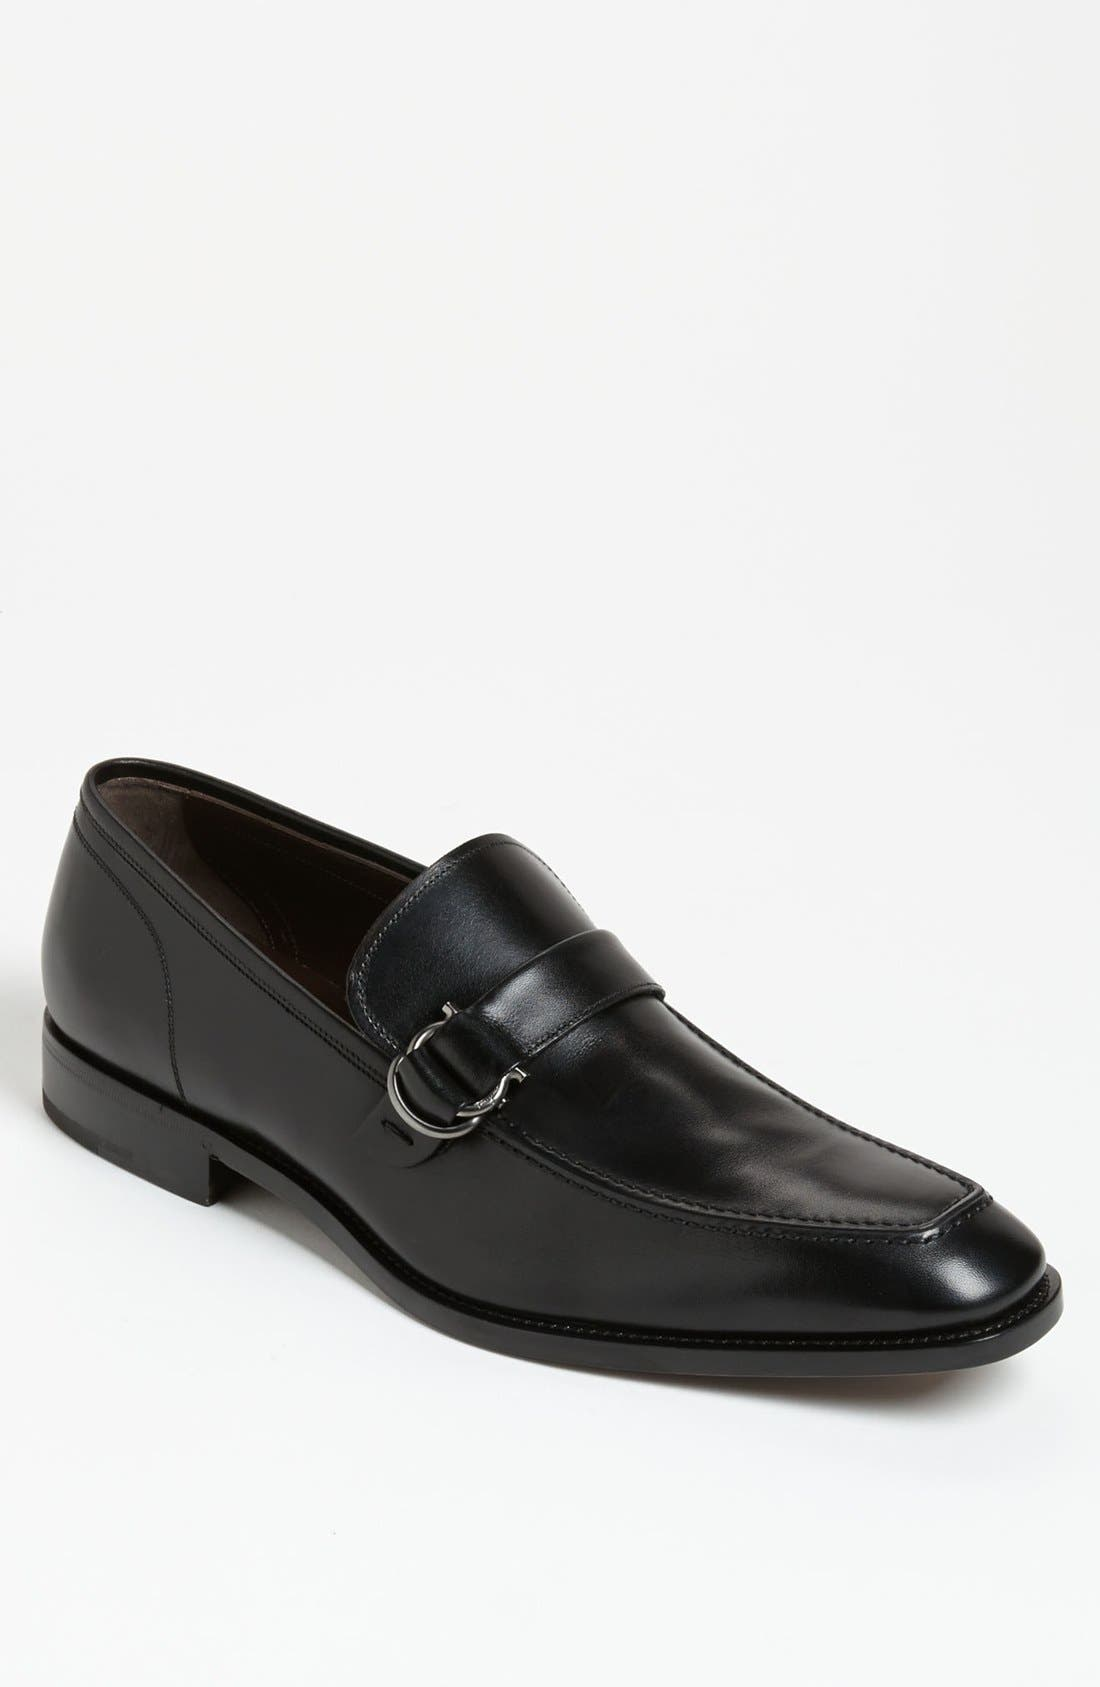 Main Image - Salvatore Ferragamo 'Teo' Bit Loafer